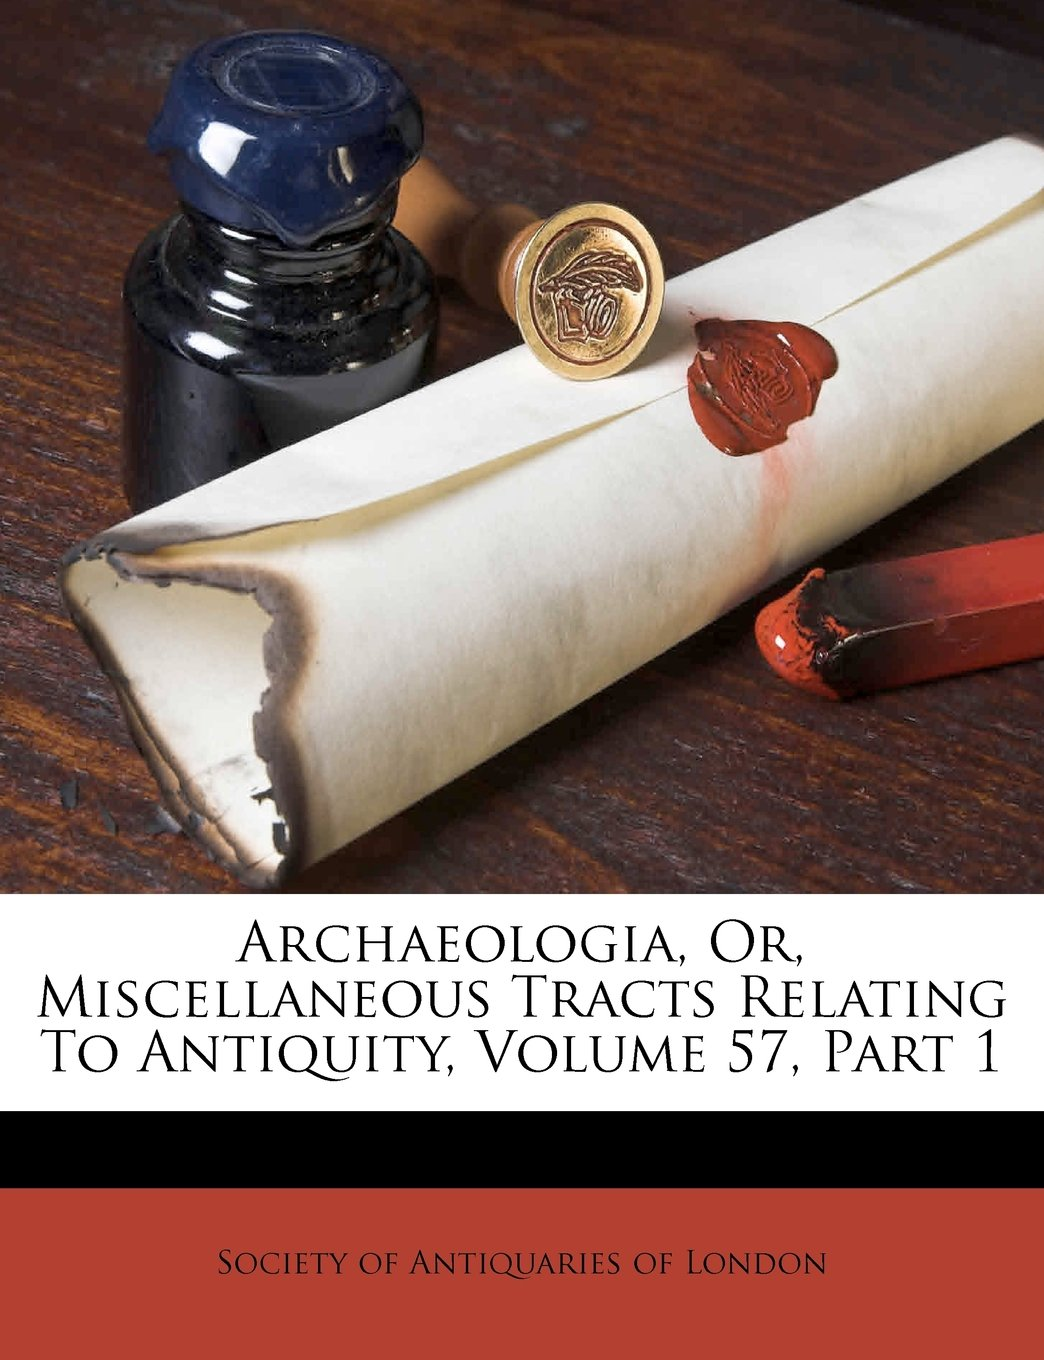 Archaeologia, Or, Miscellaneous Tracts Relating To Antiquity, Volume 57, Part 1 PDF